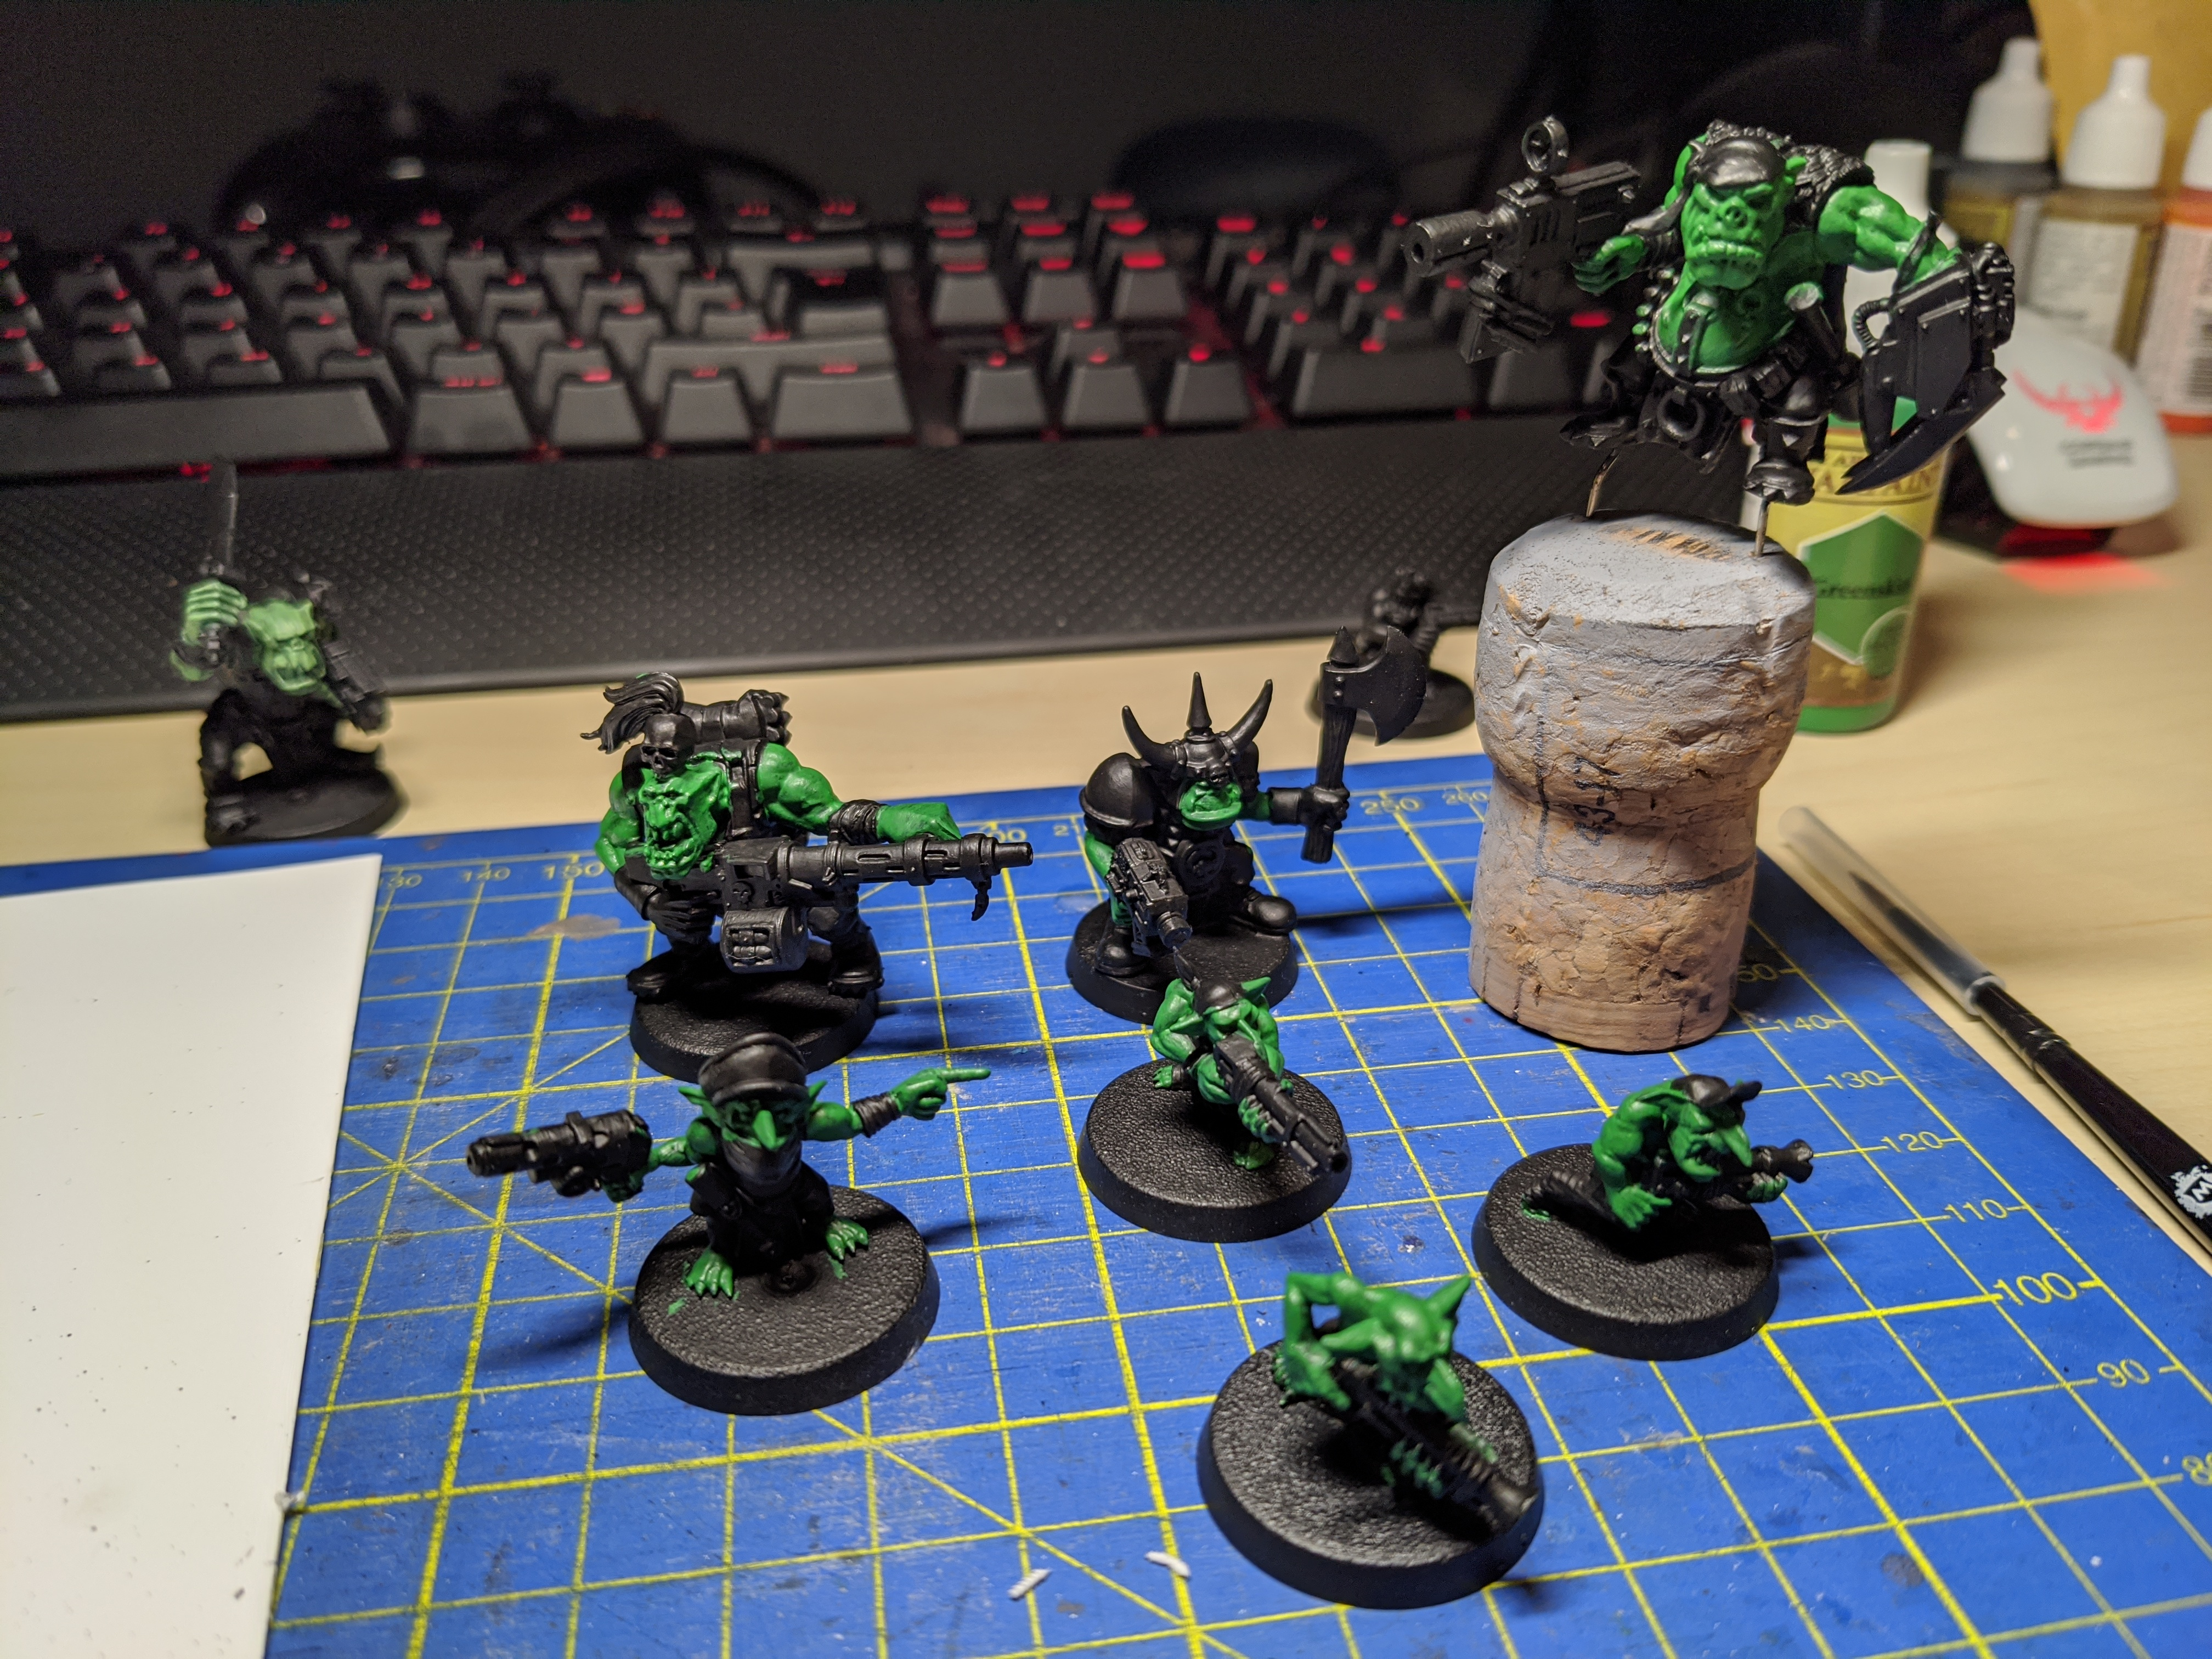 A collection of Ork models with skin painted green